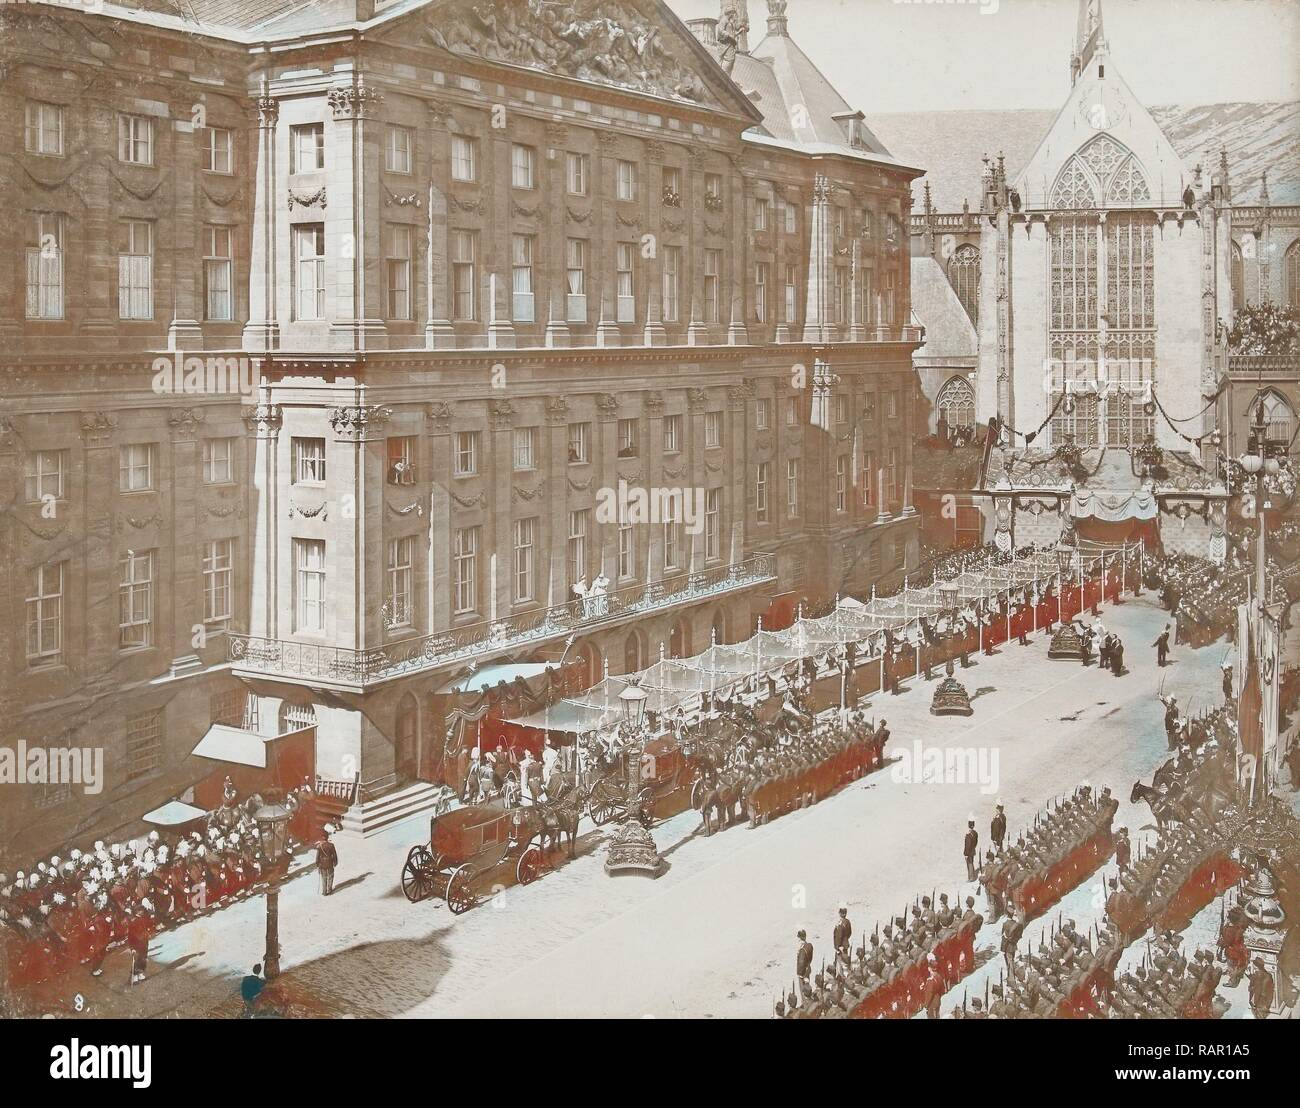 Salute Wilhelmina by soldiers and civilians after her coronation as Queen at the Royal Palace on Dam Square reimagined - Stock Image